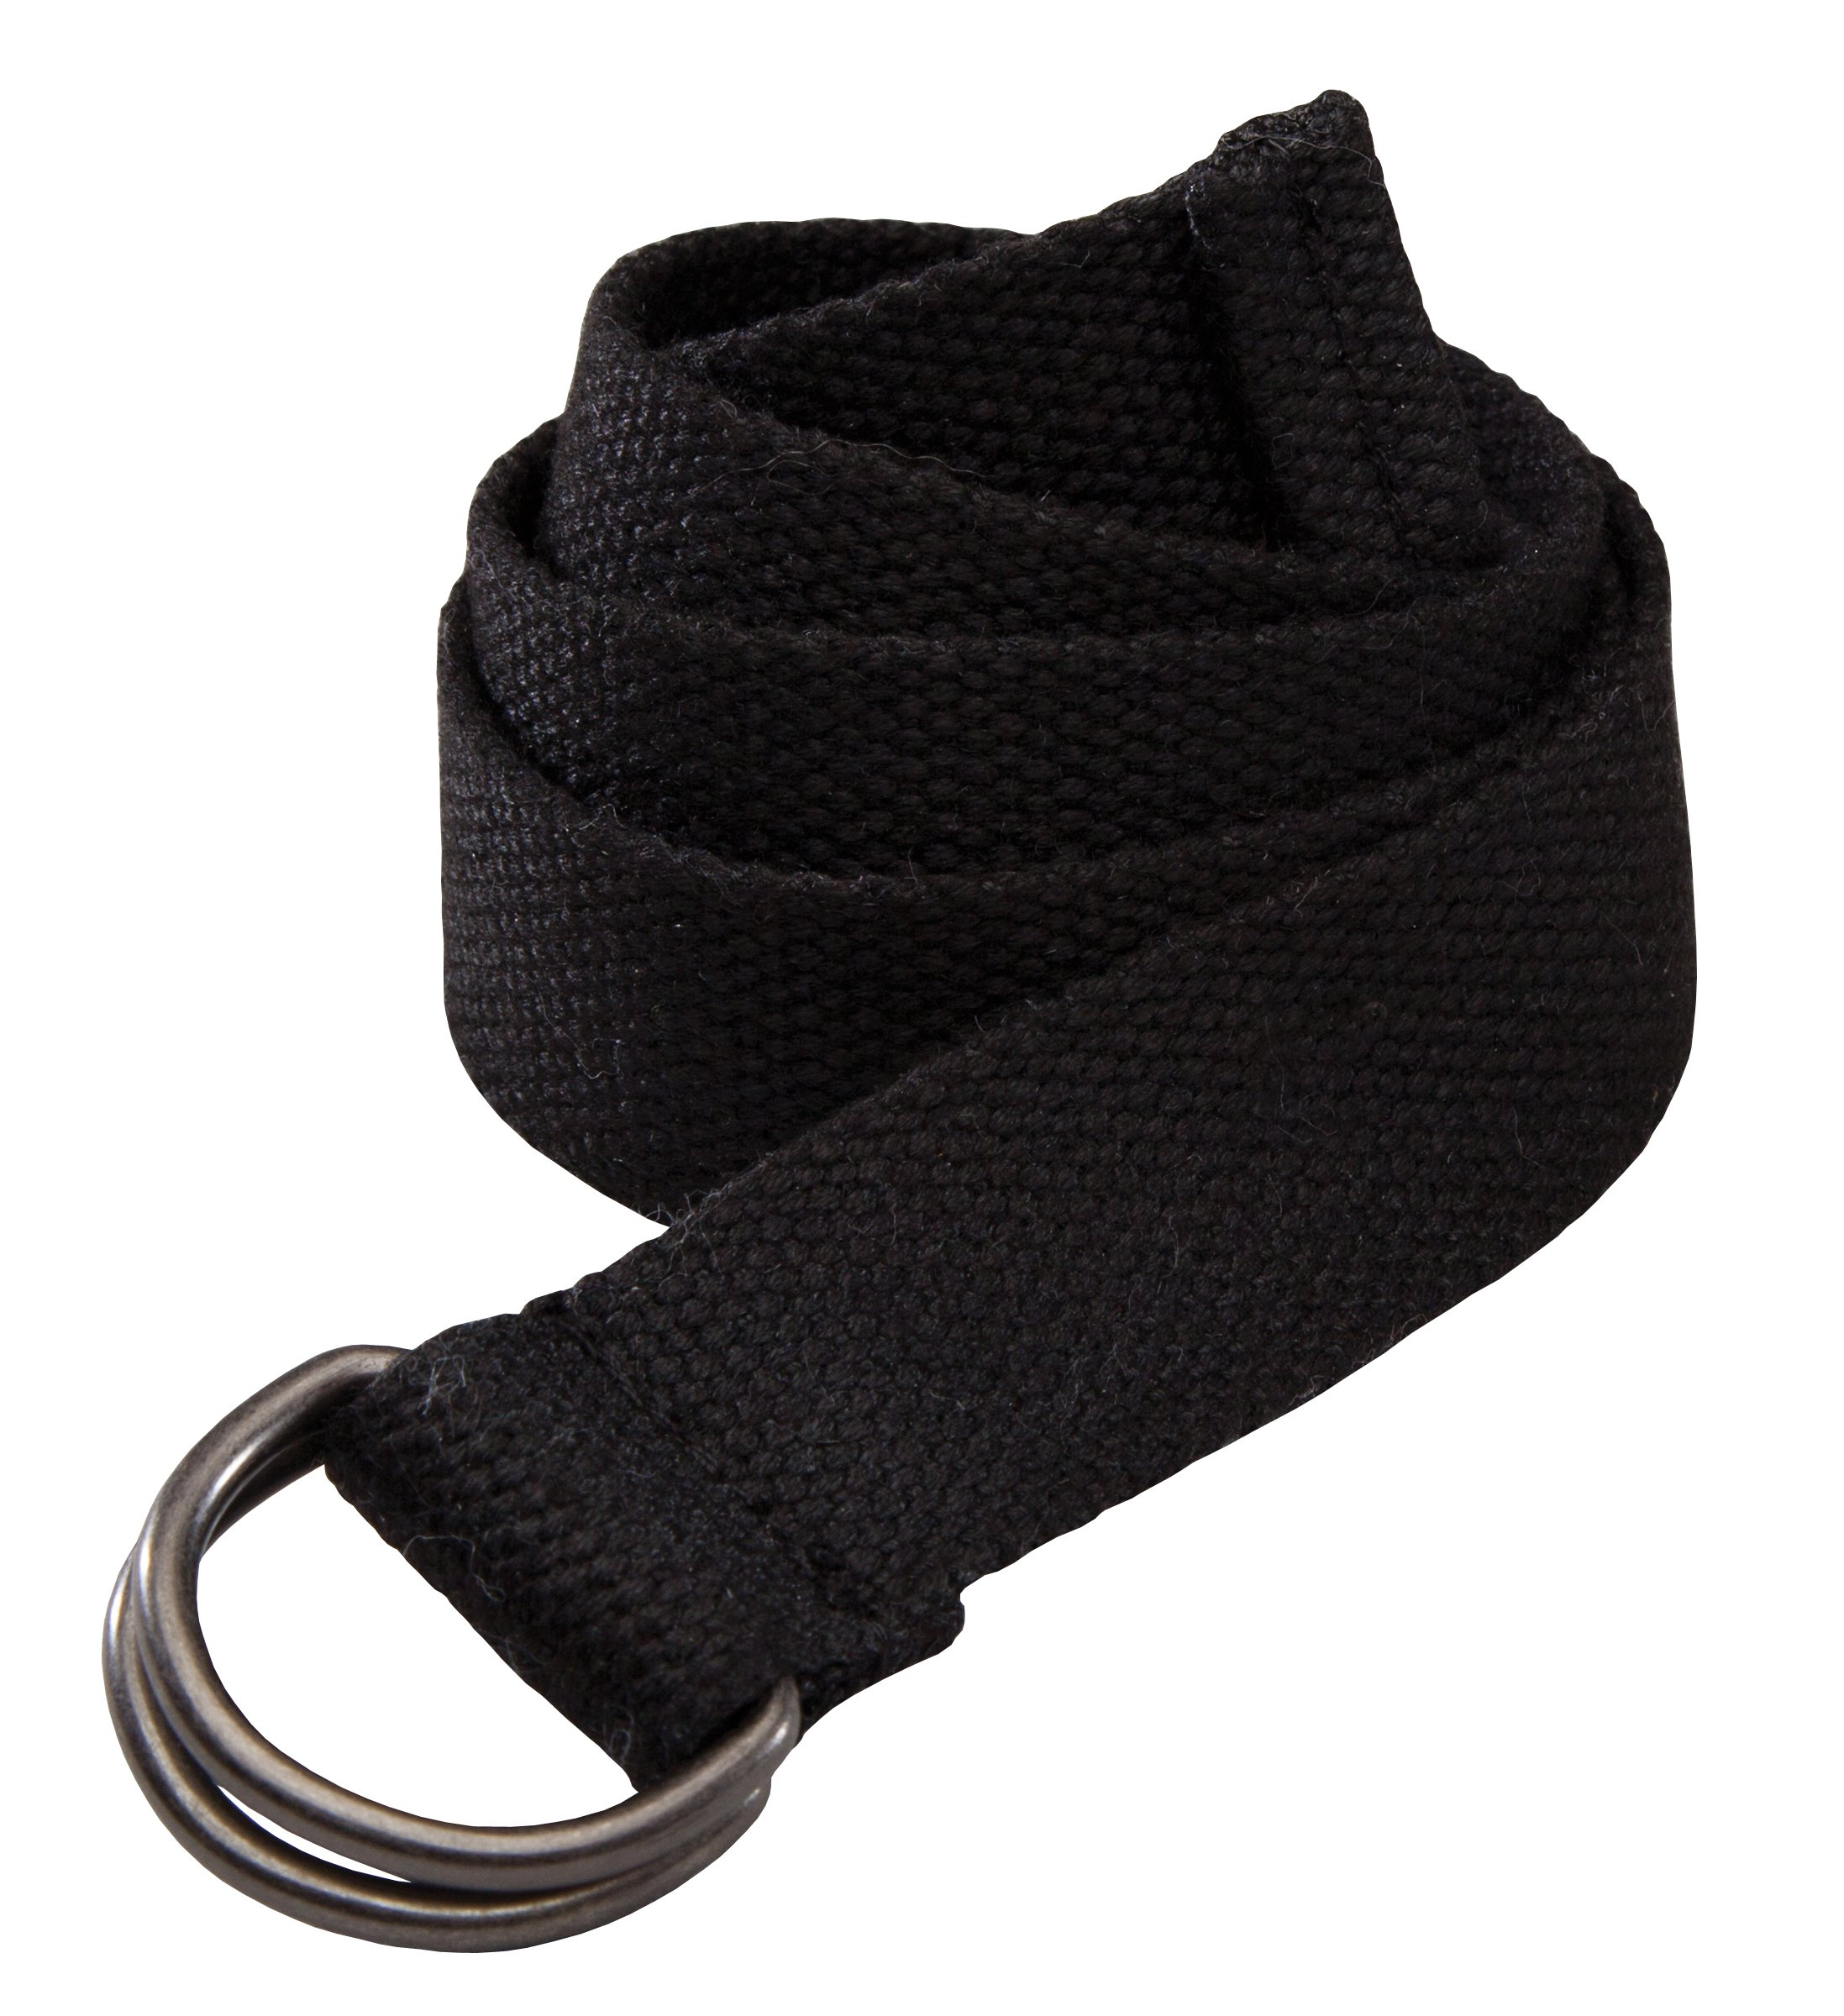 Averill's Sharper Uniforms Men's Hotel D-Ring Web Belt Large Black